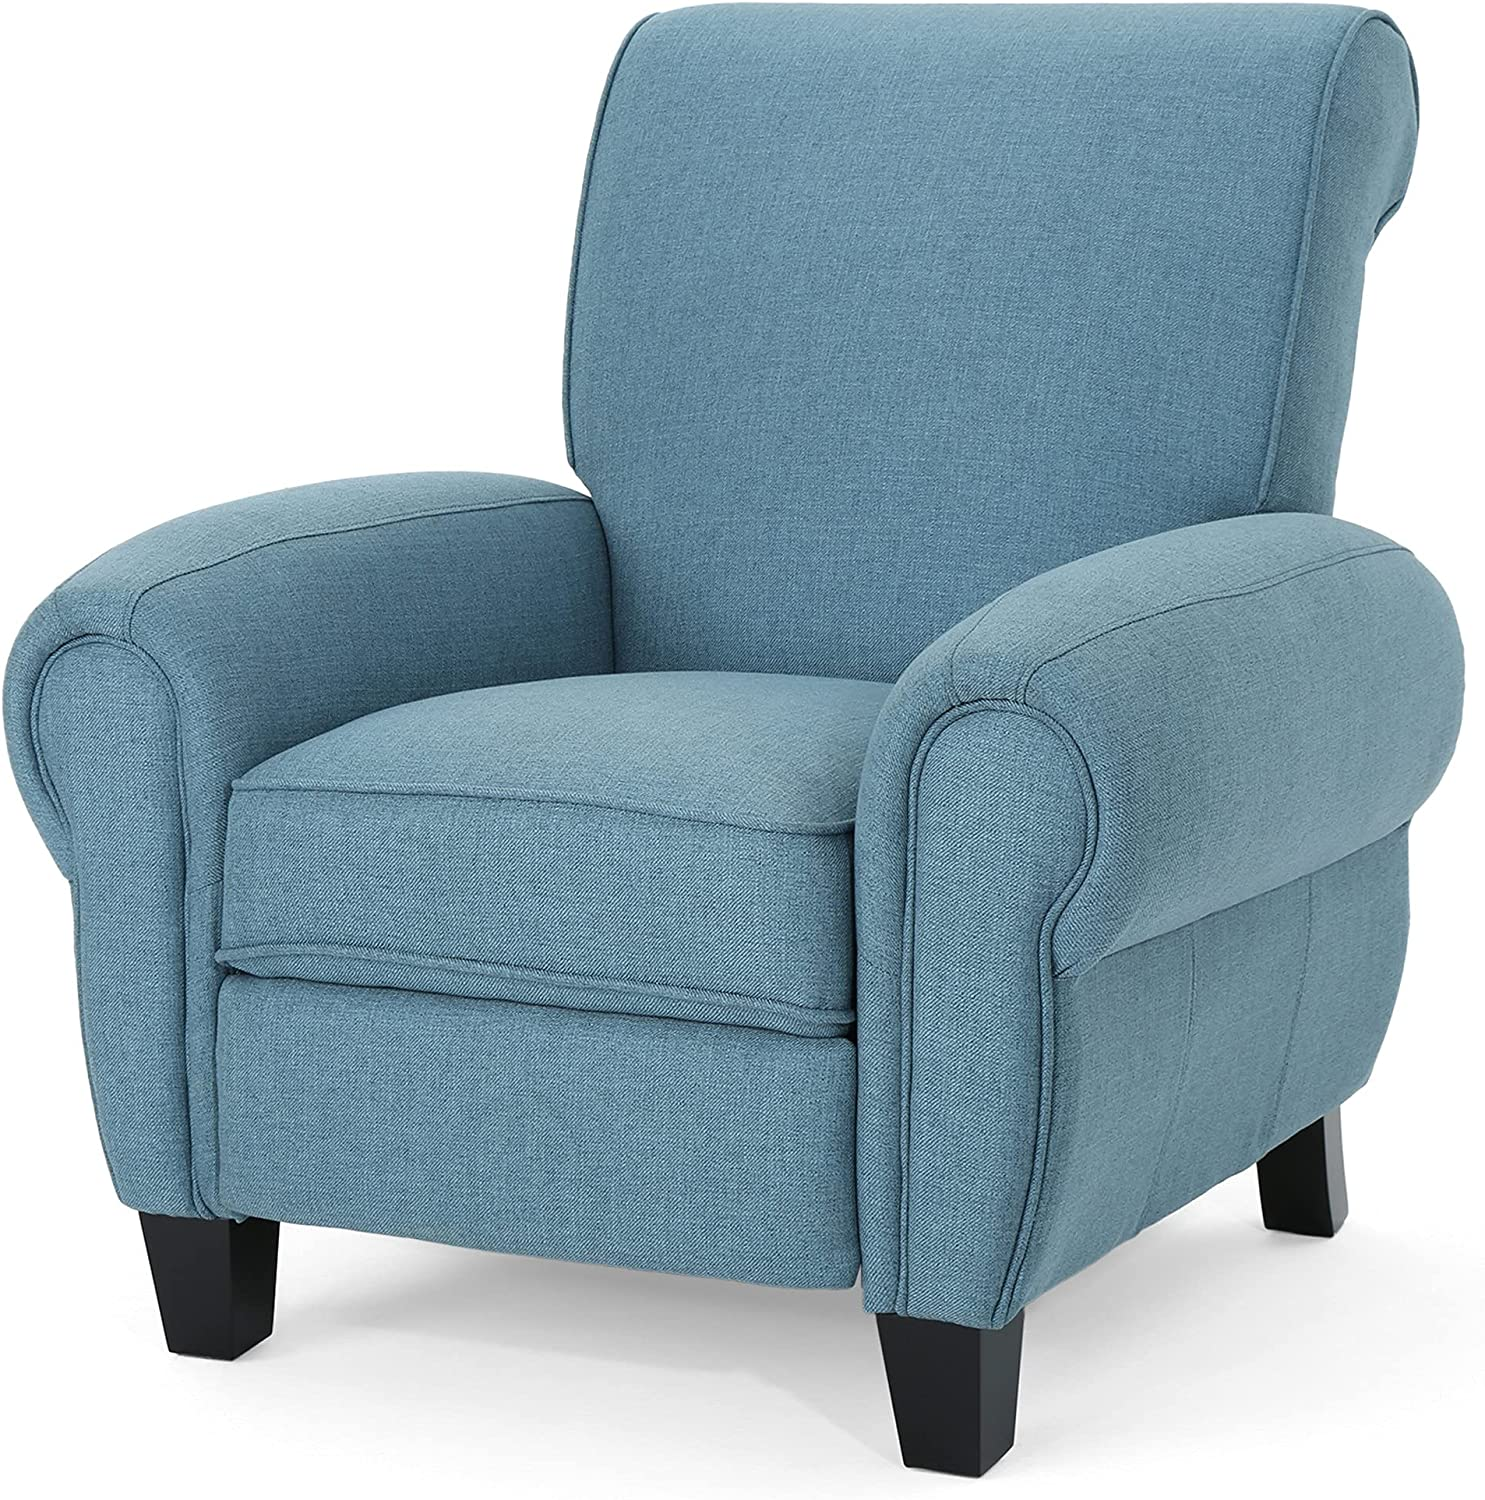 Christopher Knight Home Tripp Monte Recliner Mail order cheap Pushback Dark Ranking TOP16 Blue